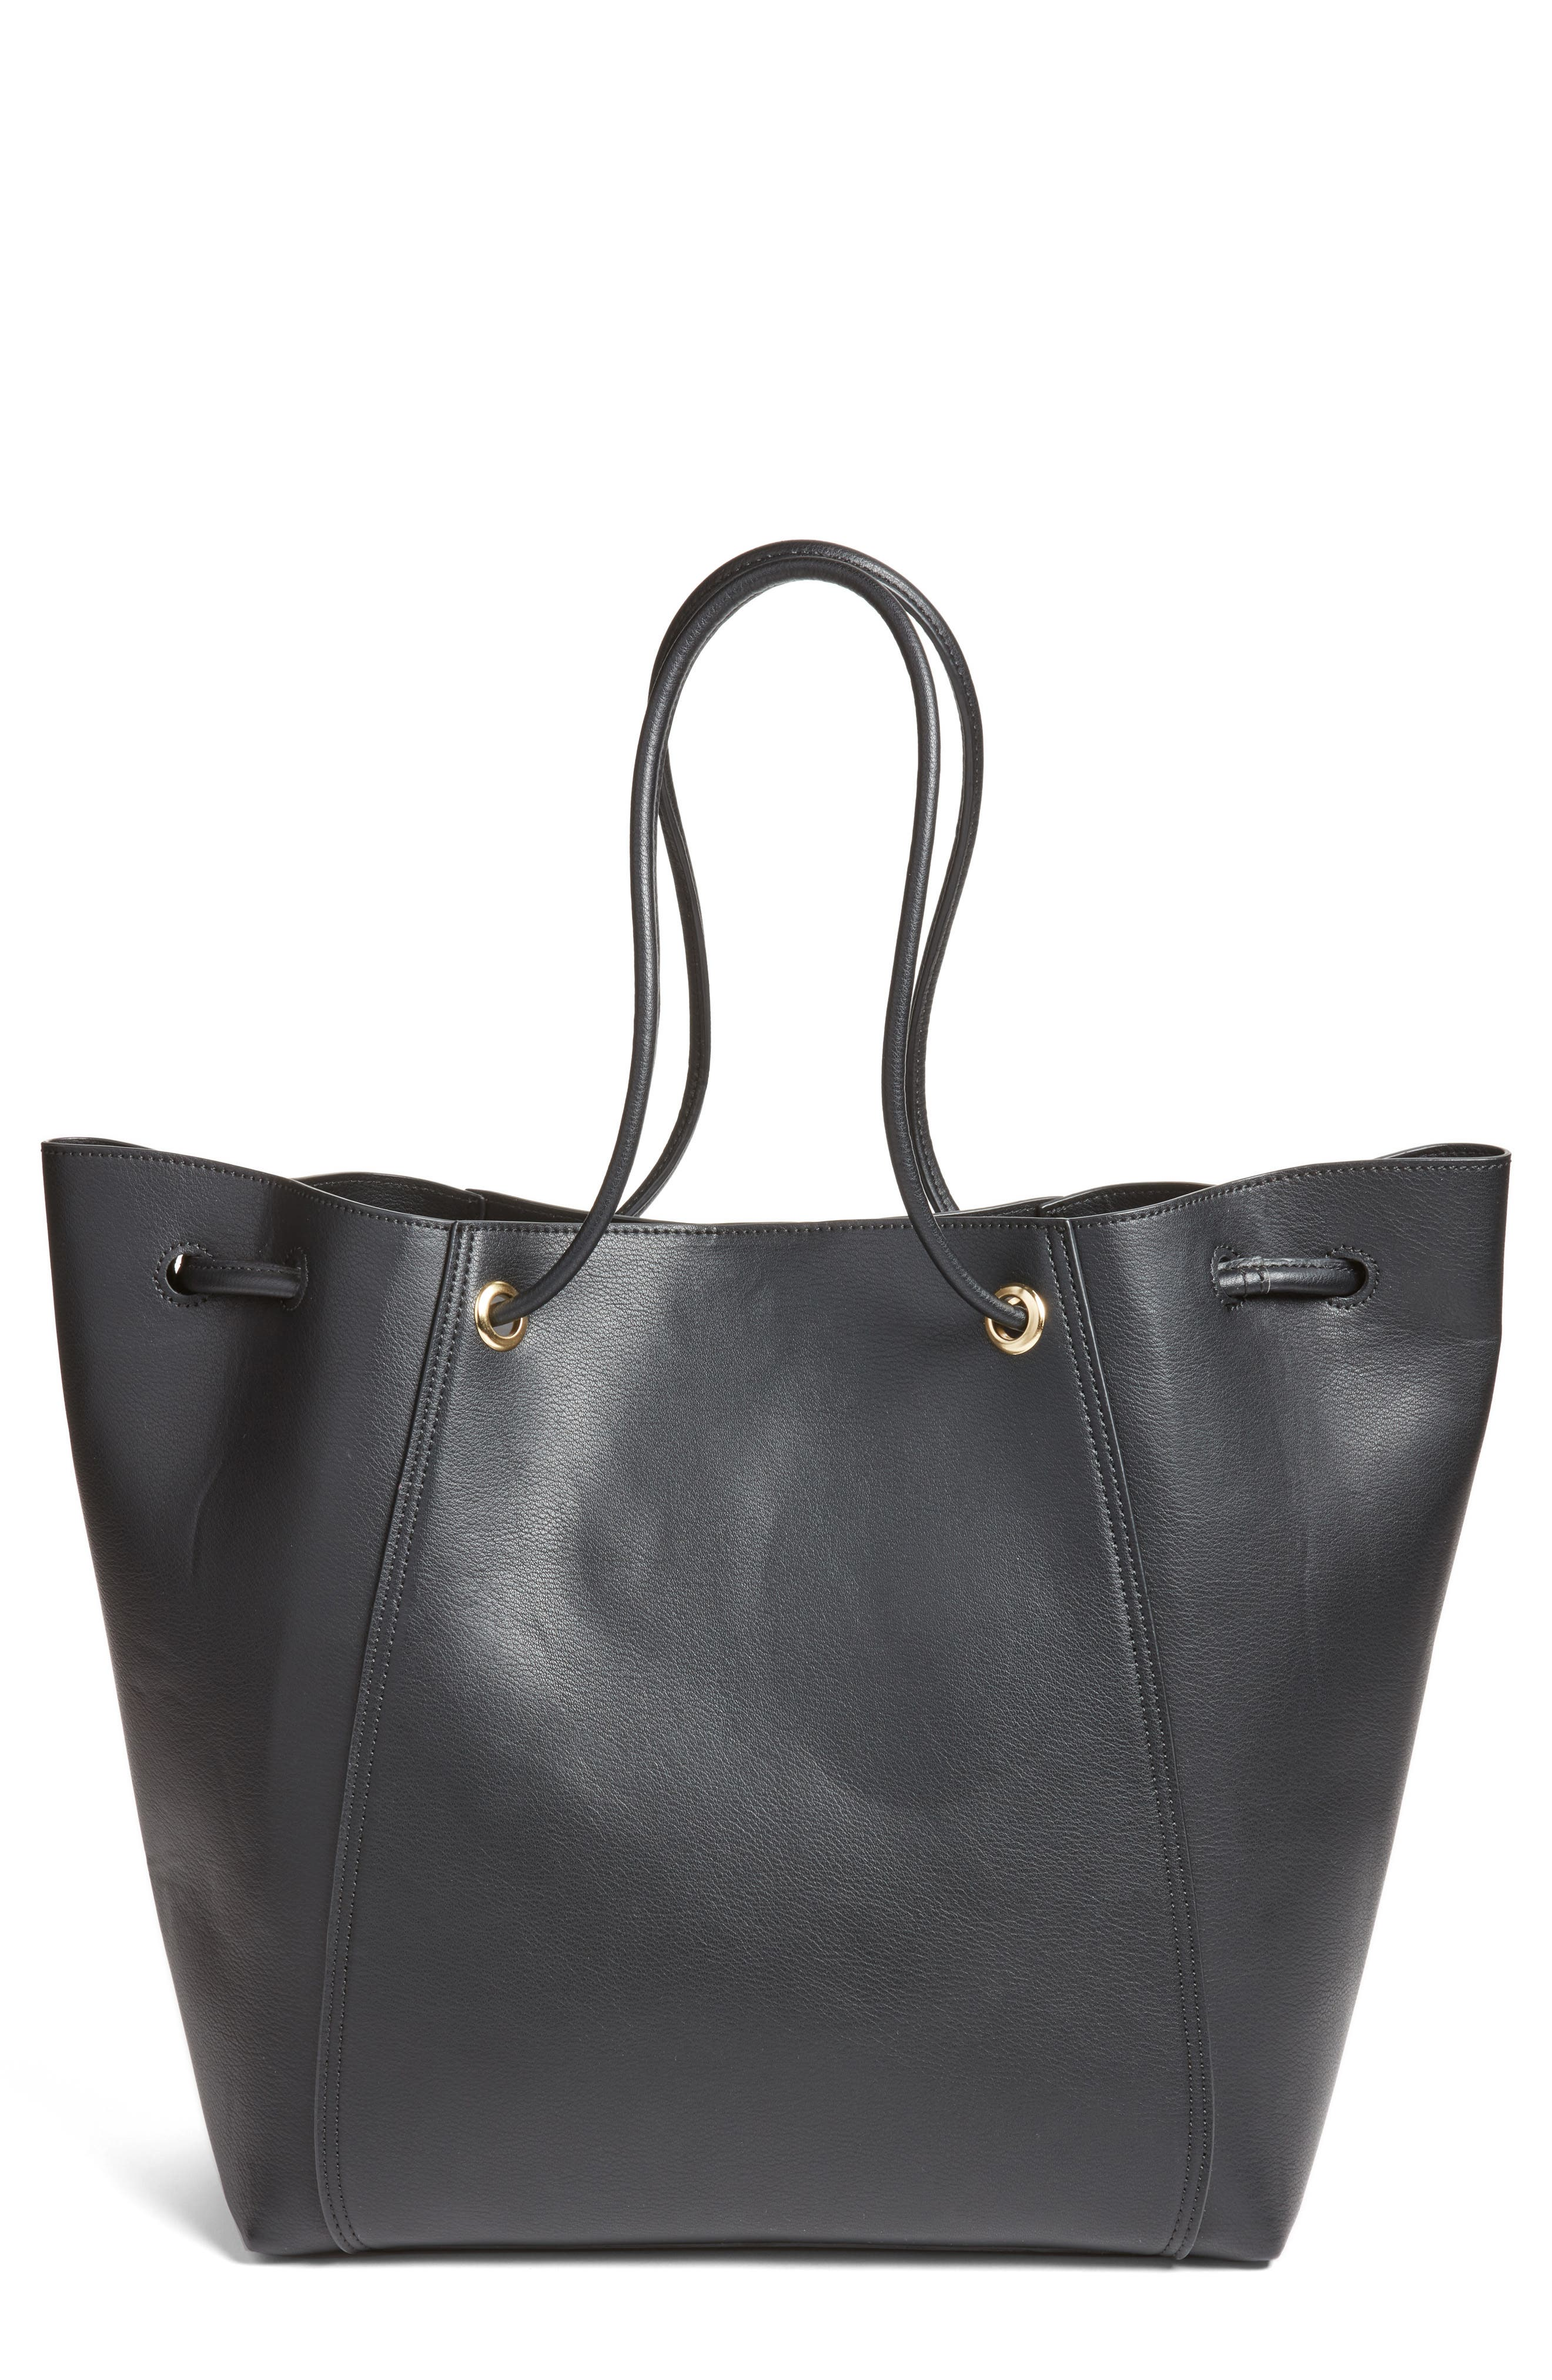 Phase 3 Faux Leather Tote